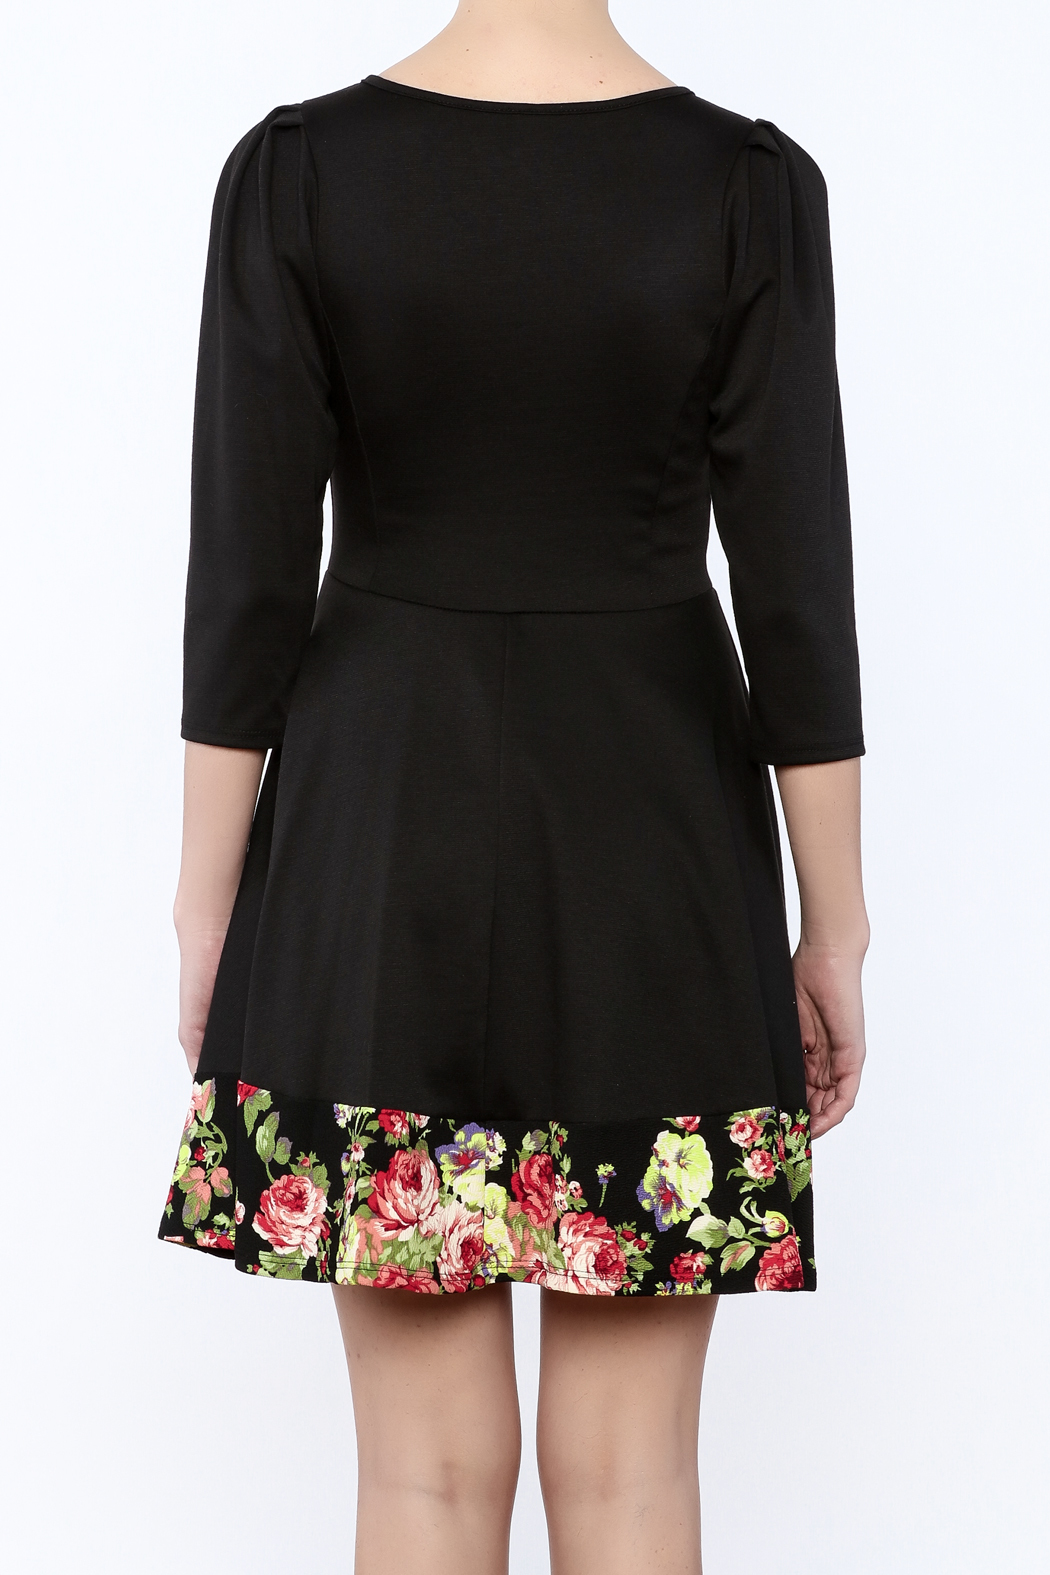 Miss 2 Day Black Floral Dress - Back Cropped Image